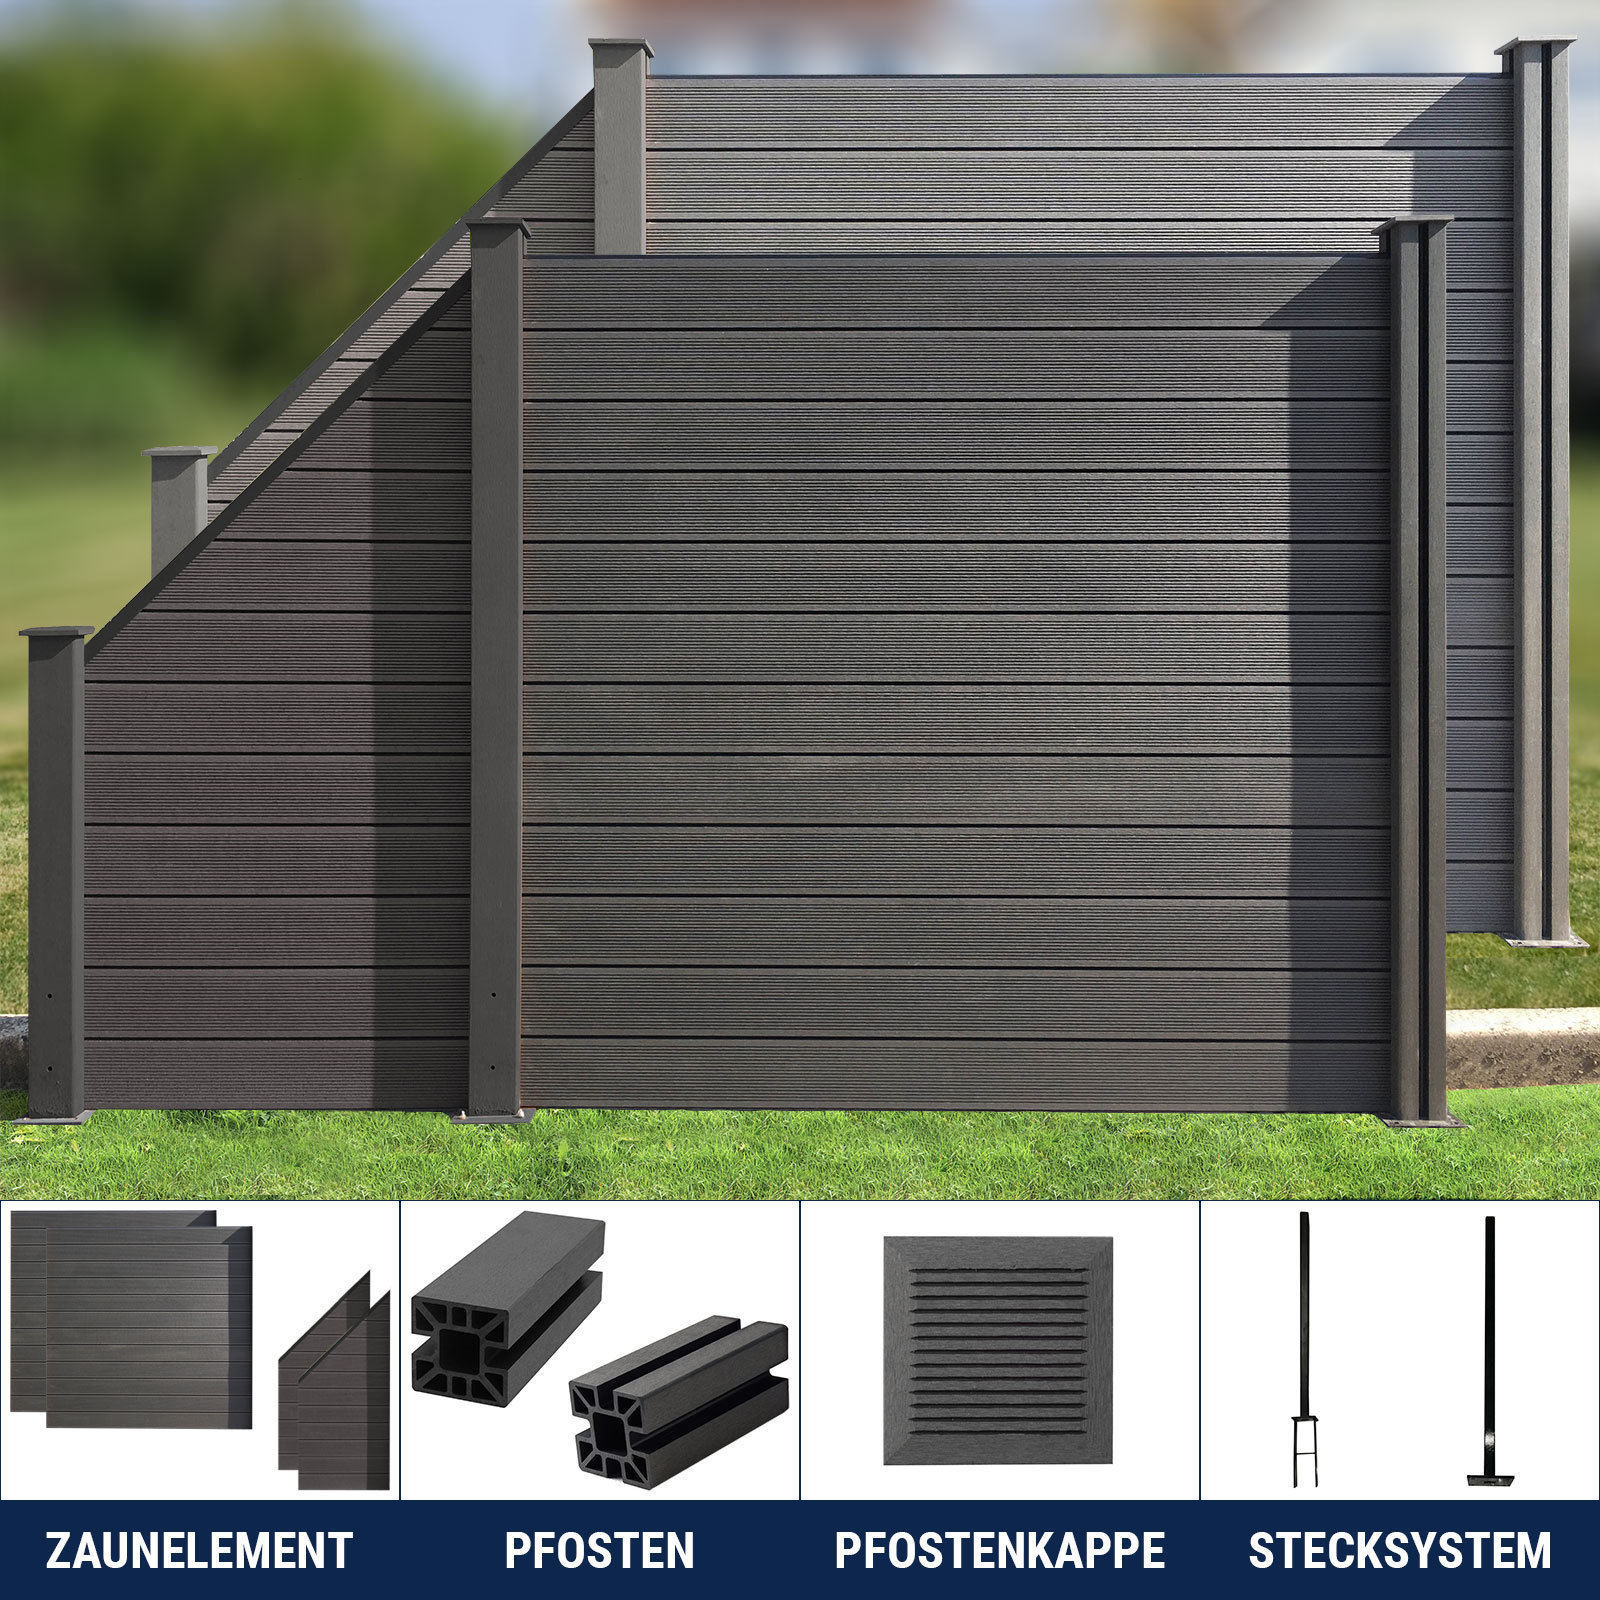 wpc zaun sichtschutzzaun gartenzaun windschutz terrasse grau anthrazit 180 x 180 ebay. Black Bedroom Furniture Sets. Home Design Ideas